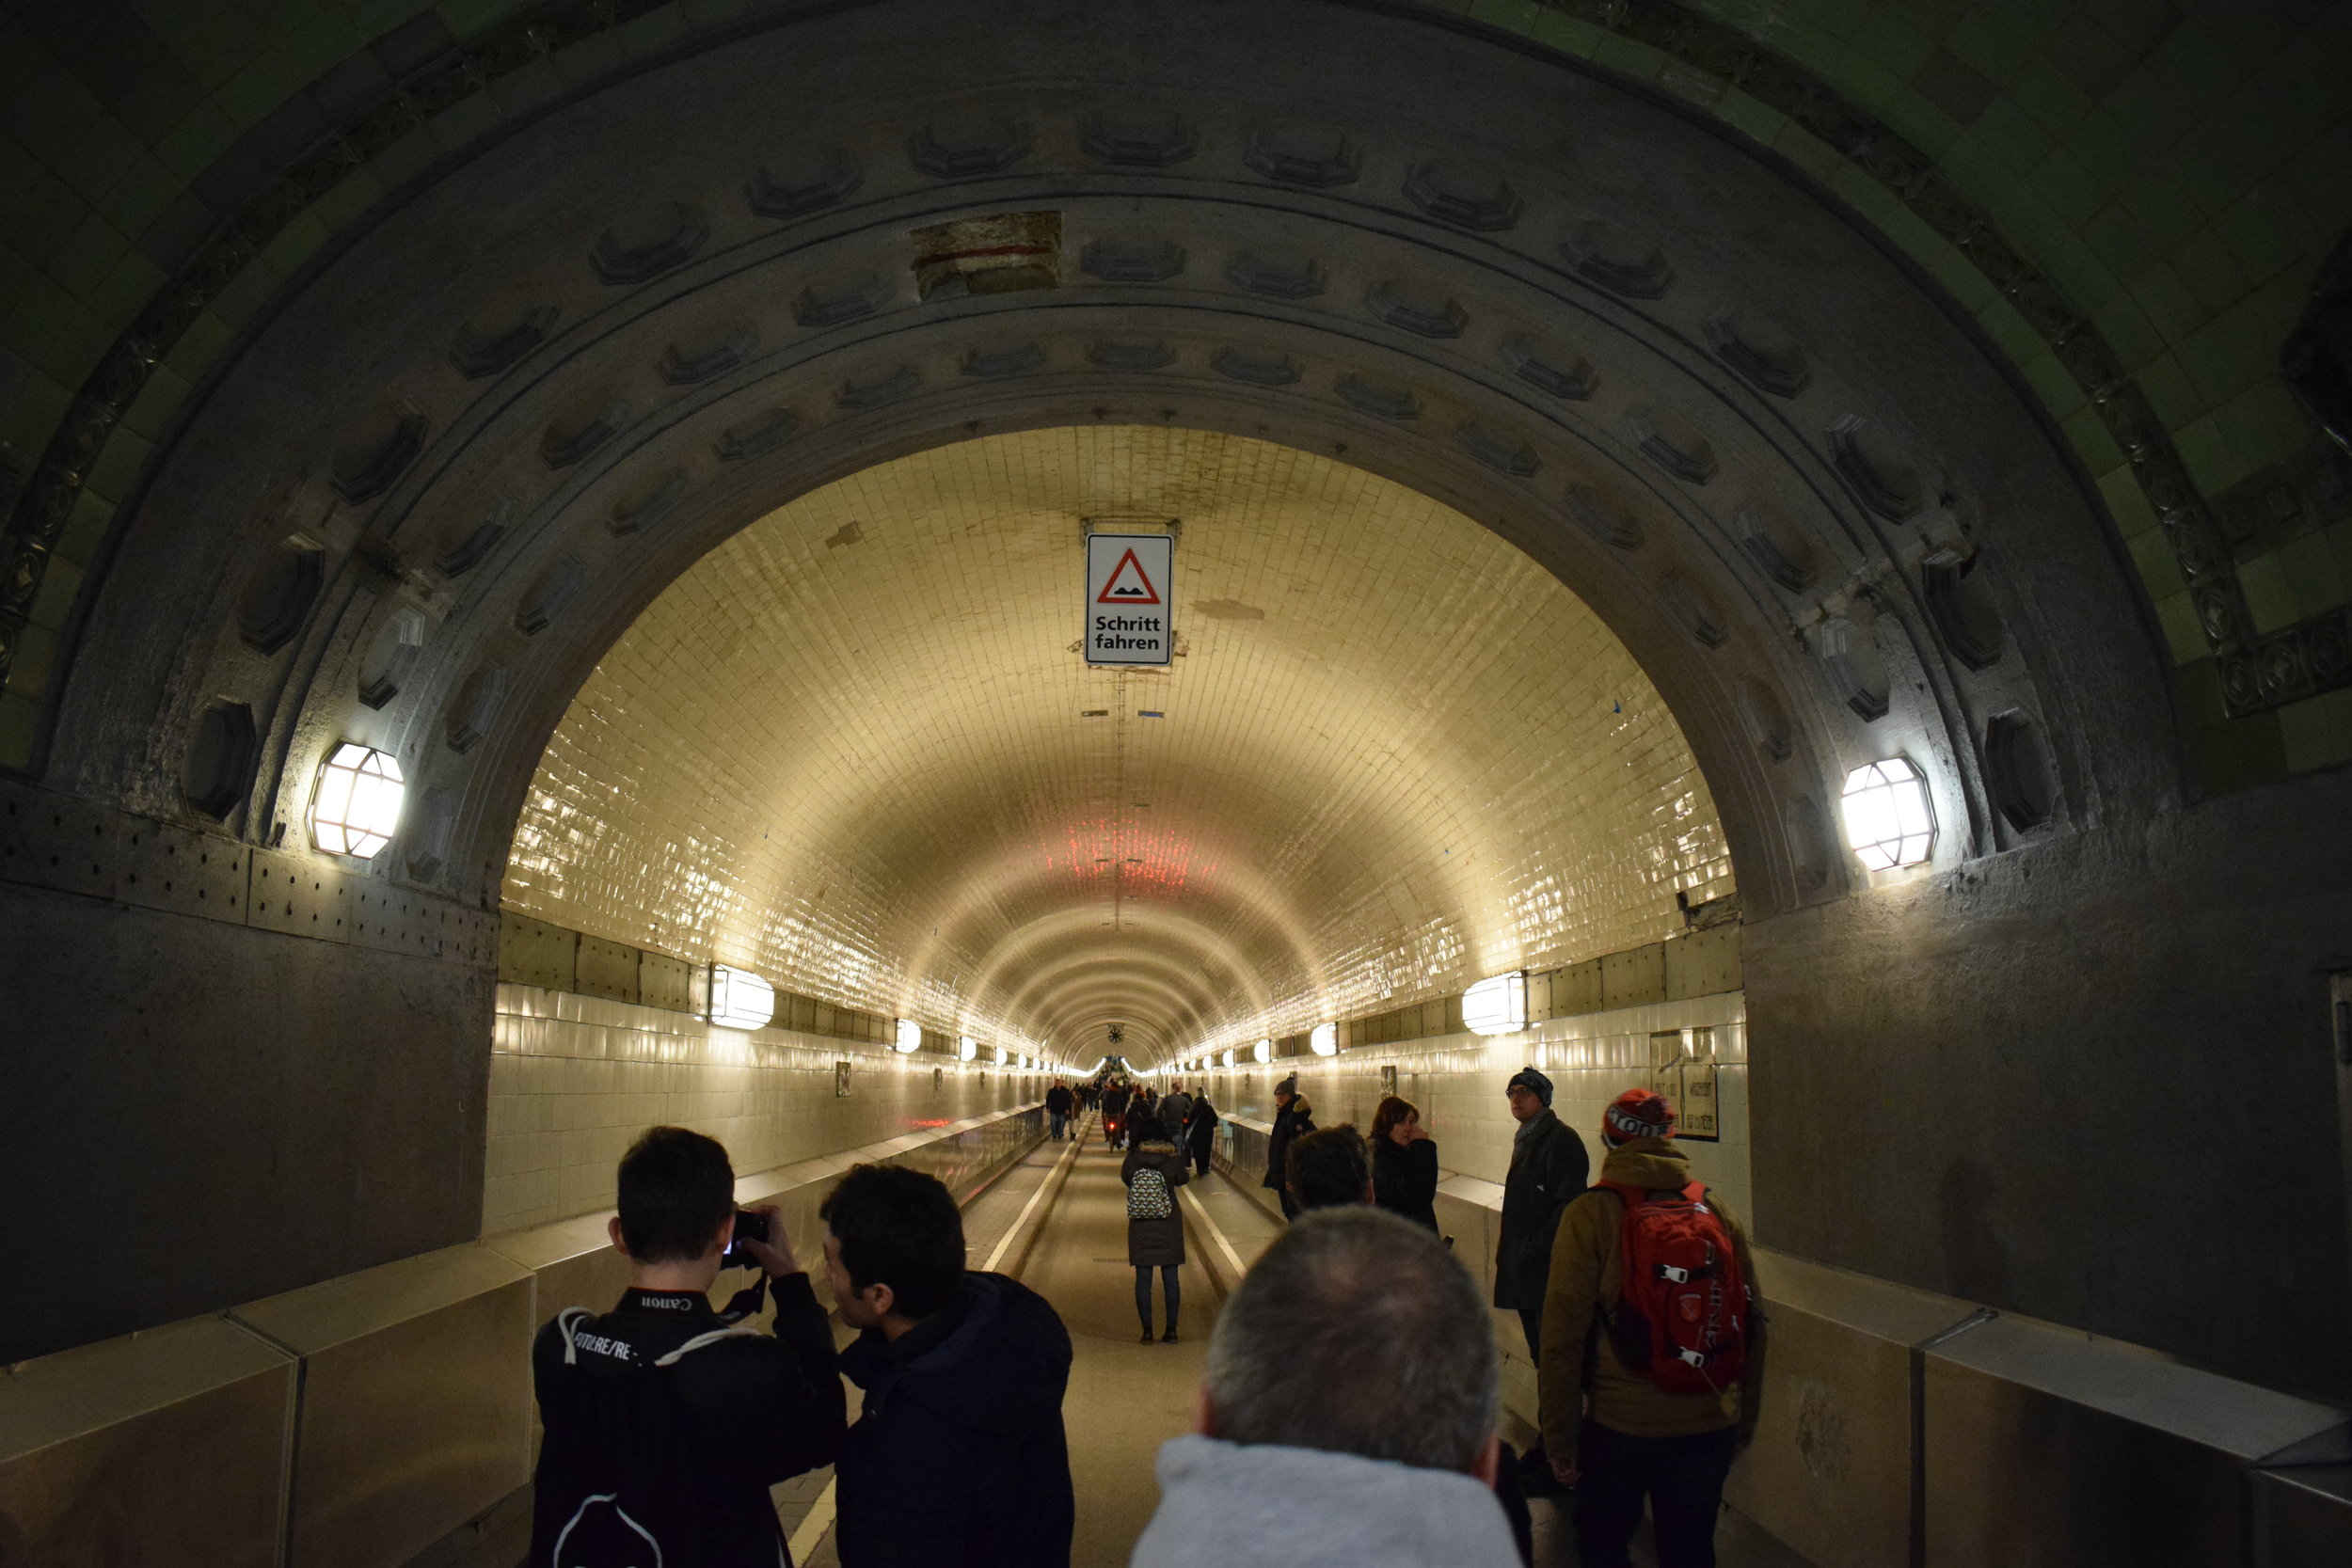 The Elbtunnel opened in 1911 and celebrated its 100th birthday in 2011.